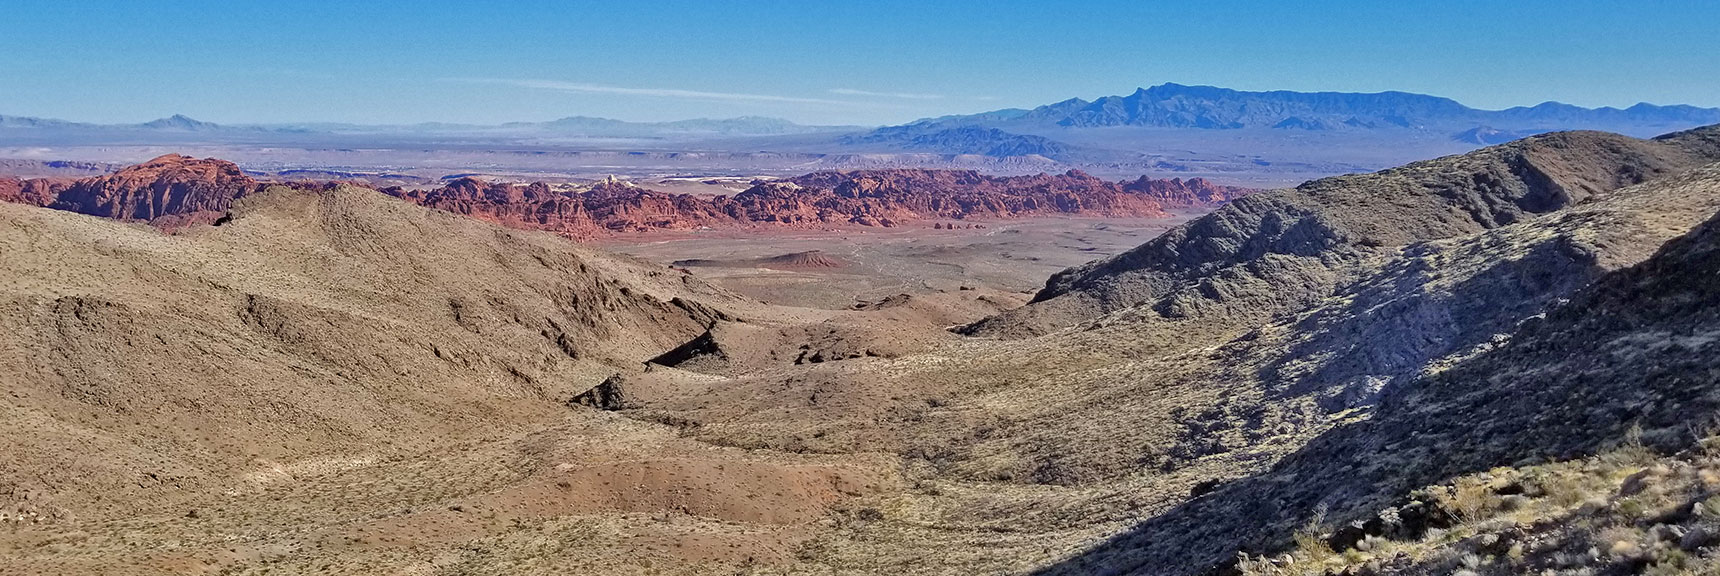 Looking Down a Valley Toward Eastern Valley of Fire State Park from the Muddy Mountains Wilderness, Nevada